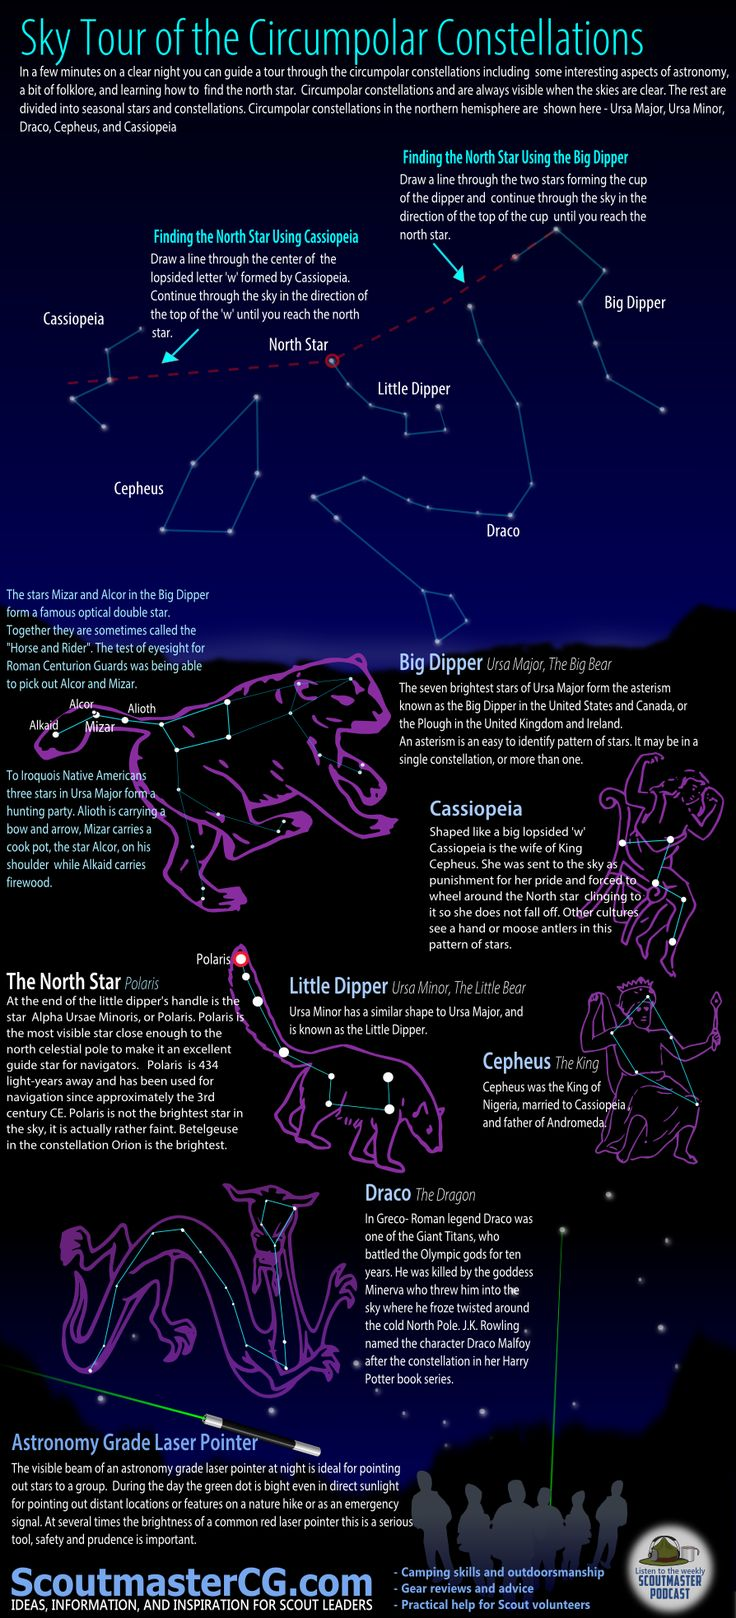 Take this sky tour infographic with you and the next time you are out camping take a few minutes to conduct a tour of the circumpolar constellations. You'll be able to show your Scouts two methods of finding the north star and how to identify the constellations along with some astronomy facts and folklore.